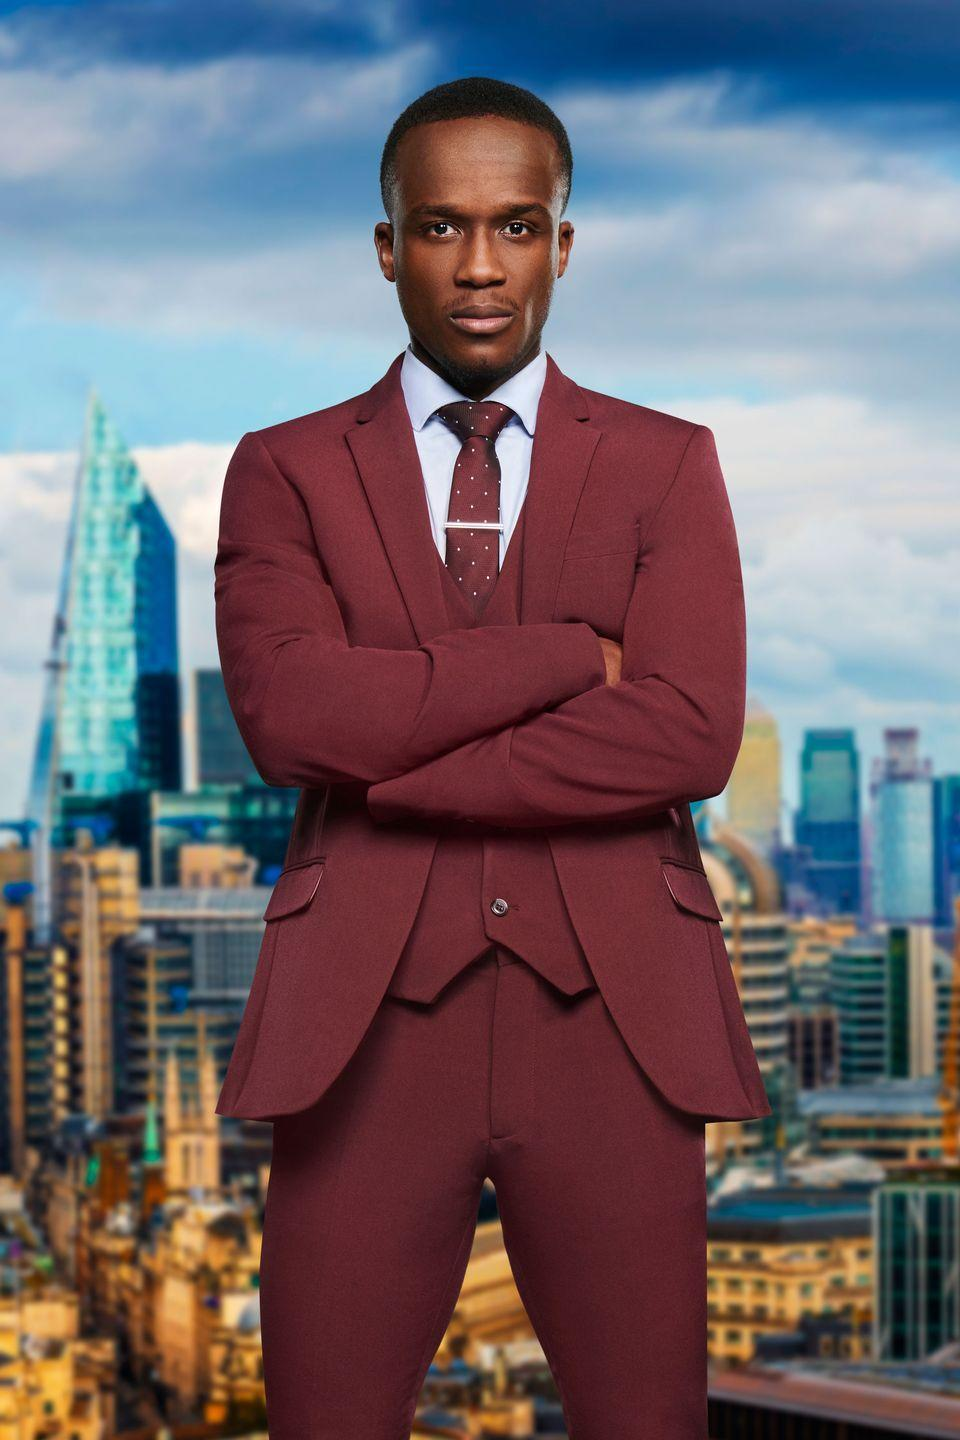 """<p>""""I combine a thirst to learn with entrepreneurial thinking, ready to win at all costs.""""</p><p>Kenna, 24, from Greater Manchester, is the owner of an alcohol-infused ice cream company. Kenna once played professional football for Manchester City before his career was cut short due to an injury. Kenna describes himself as enthusiastic with an """"infectious personality"""".</p>"""